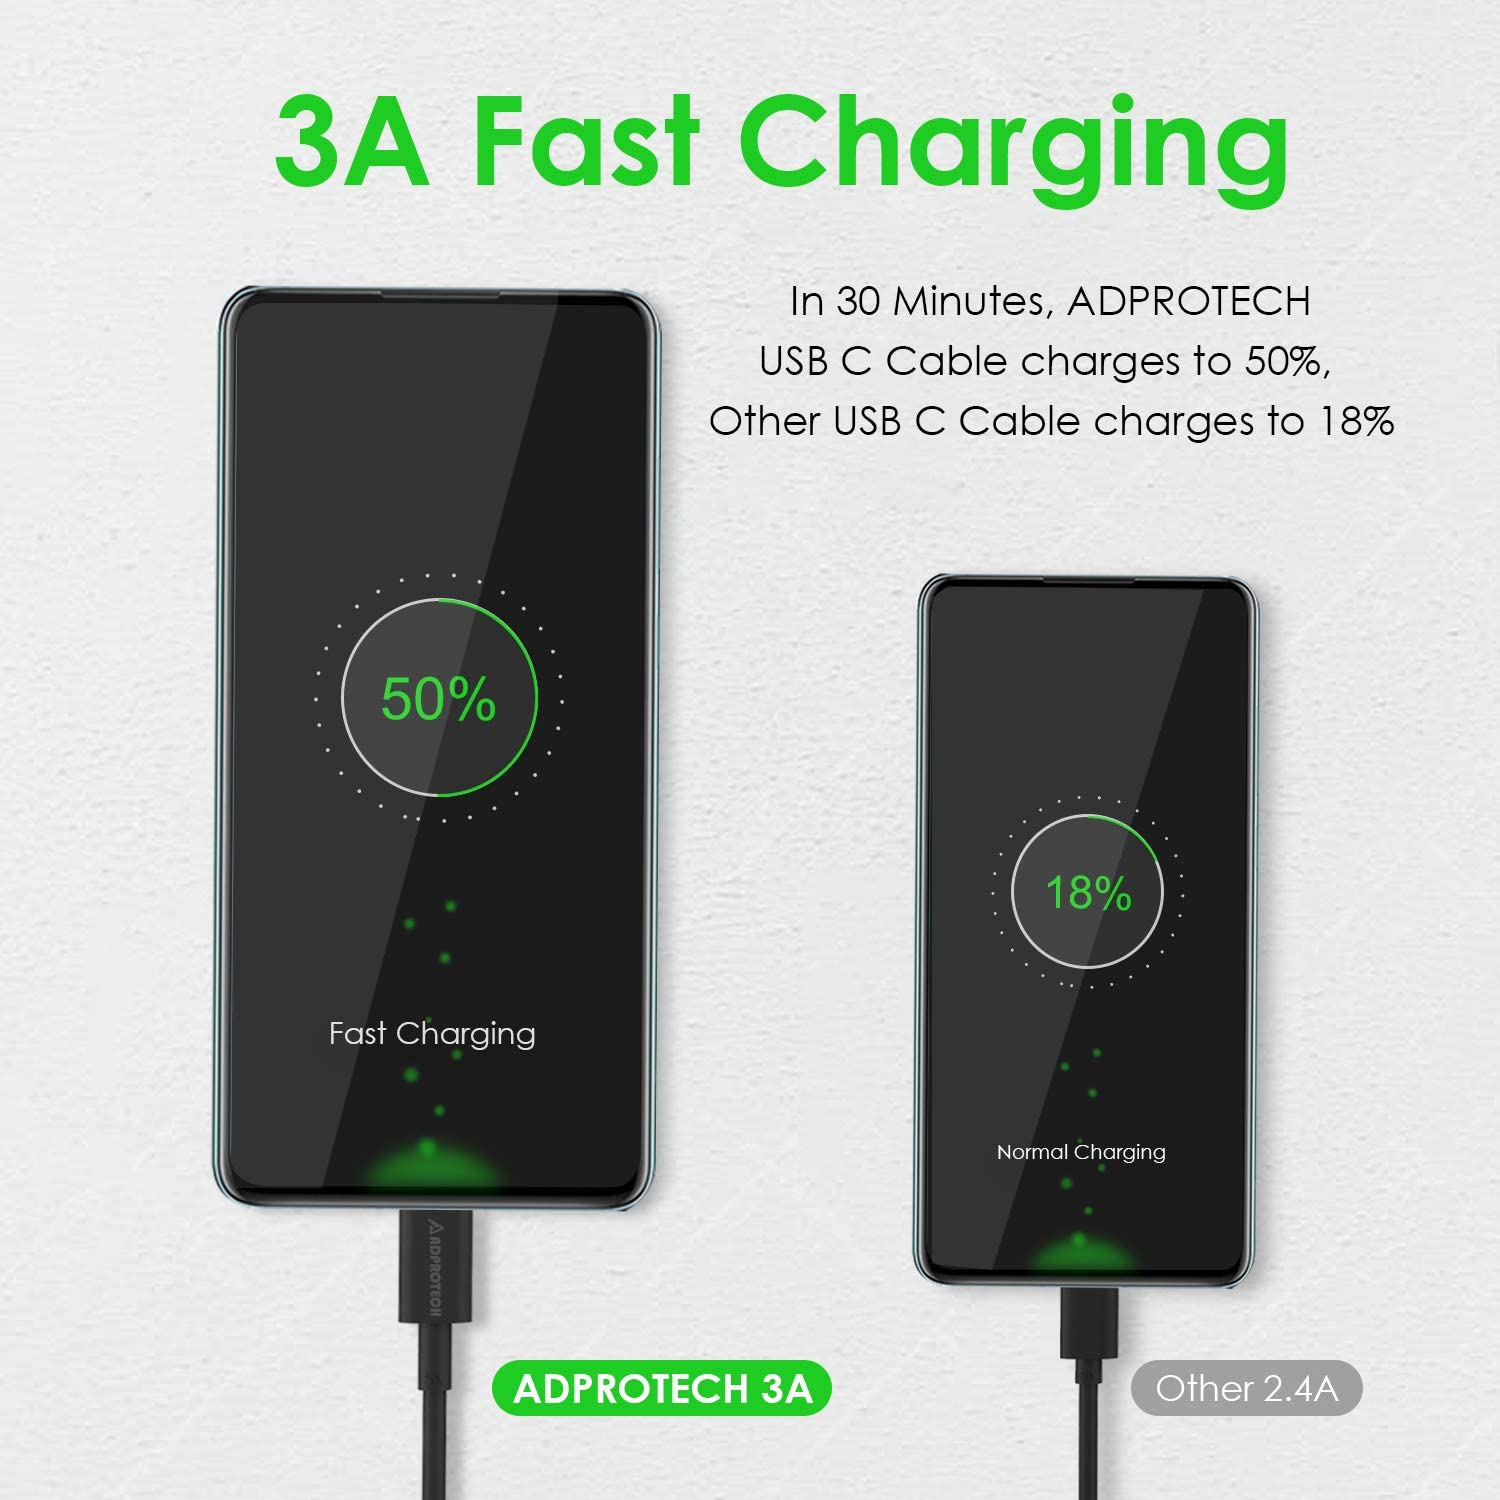 Google Pixel 2//3//3a//4 XL Silver USB C to USB C Cable ADPROTECH 3.3ft+6ft USB C Cable Fast Charger Compatible with Samsung Galaxy S20 S20+ S20 Ultra Note 10 Plus A80 iPad Pro 2018